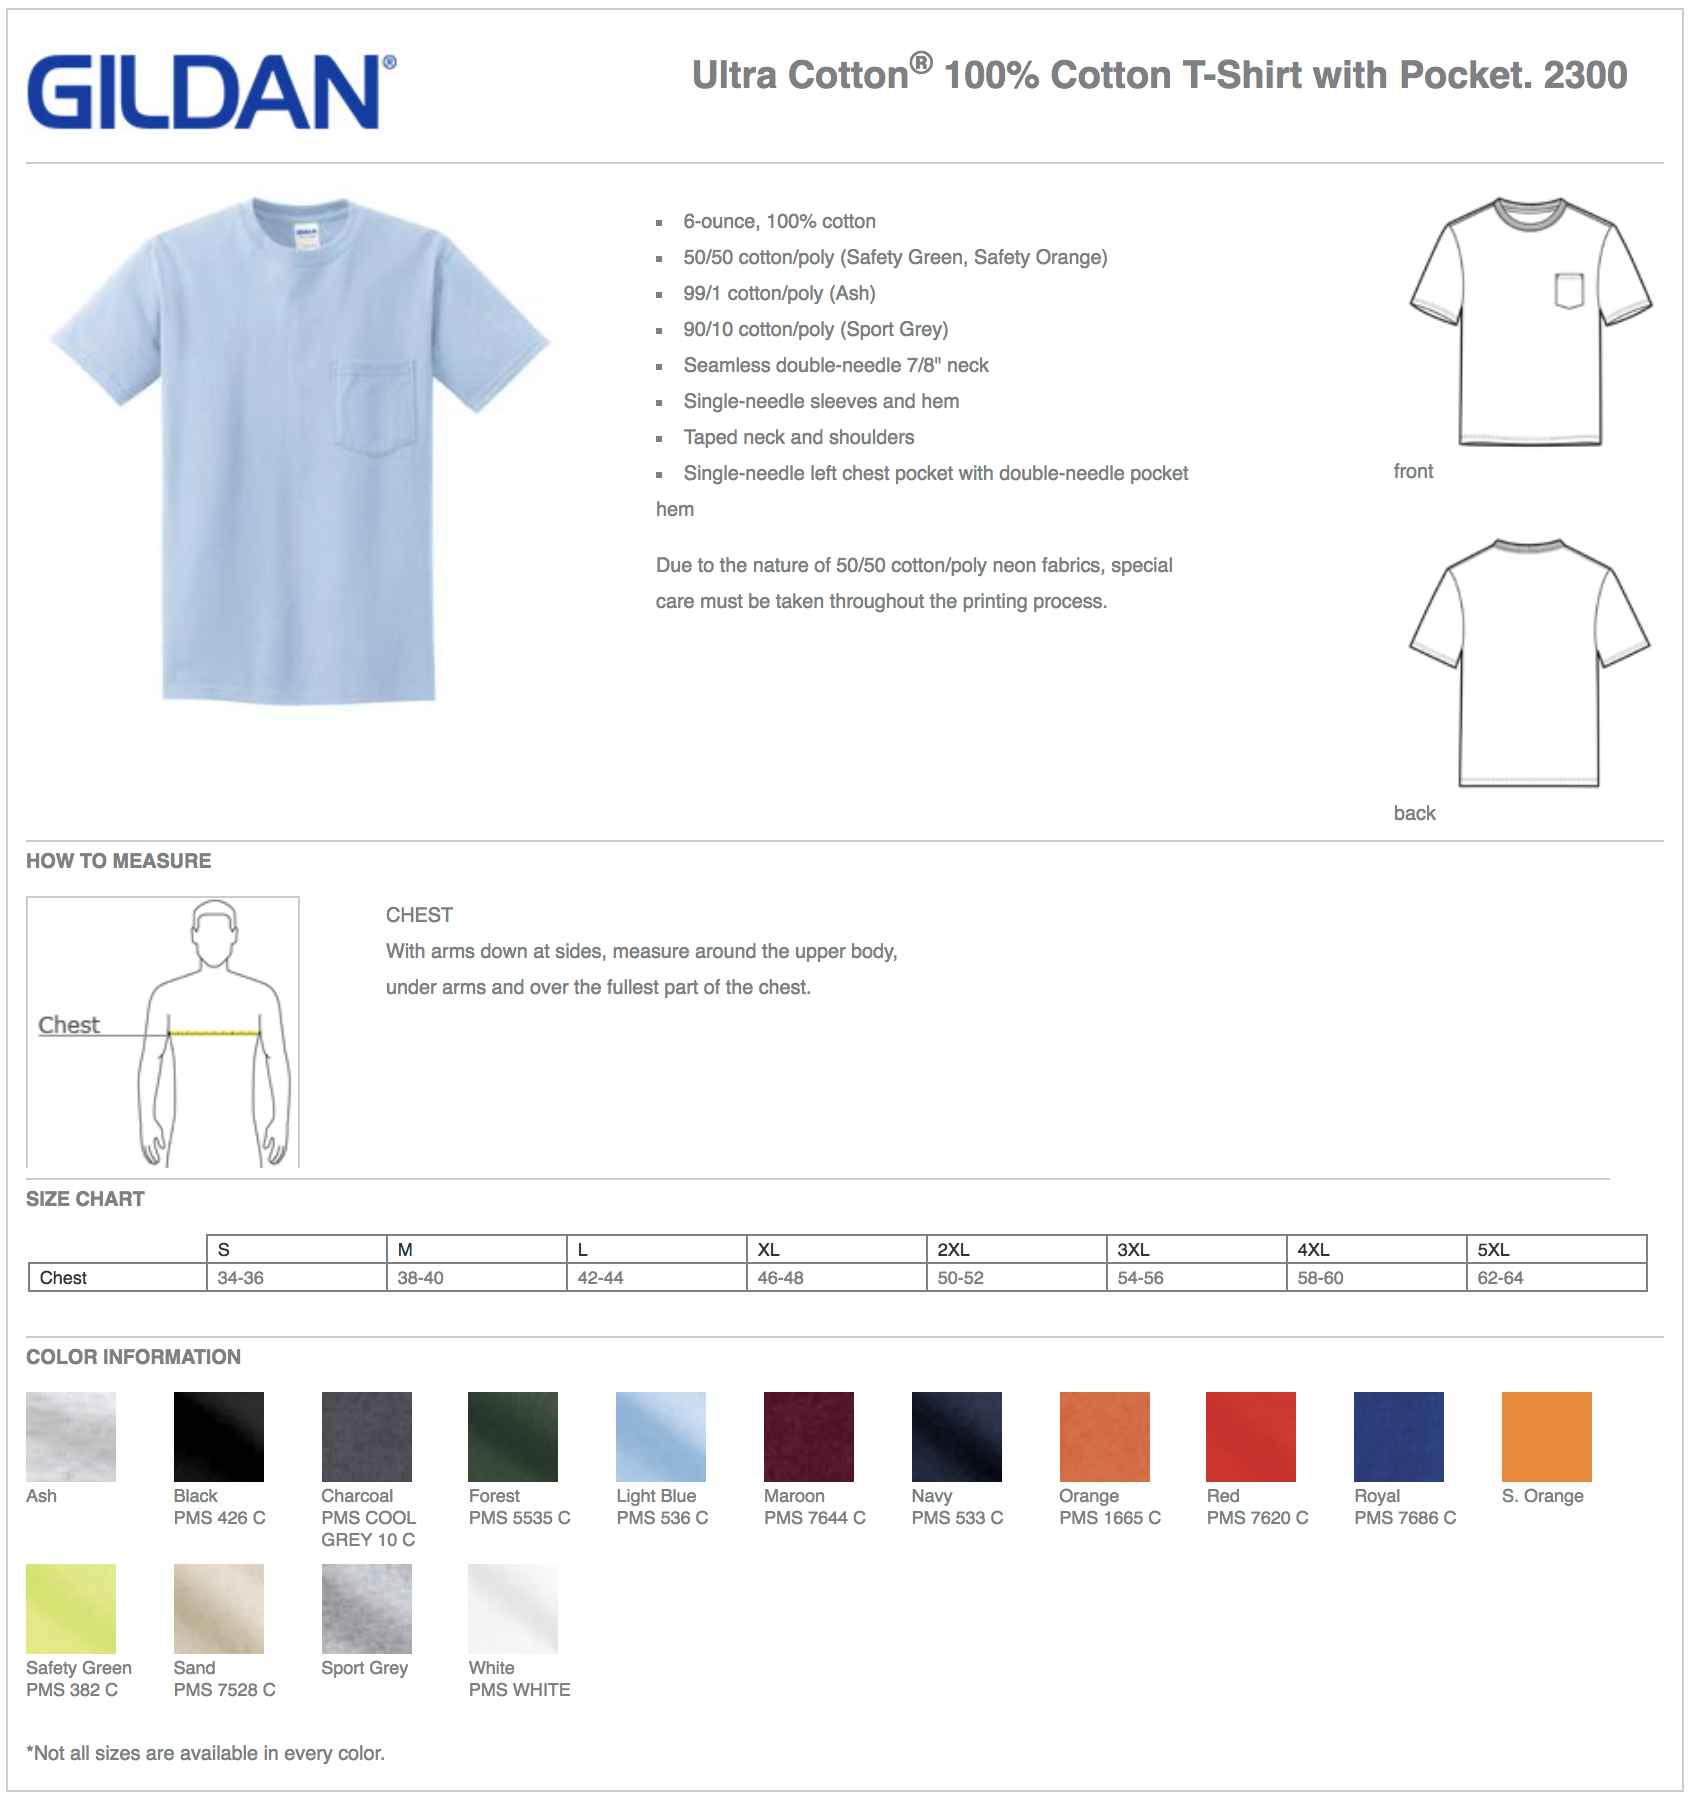 Gildan 2300 Custom T-Shirts with Pocket